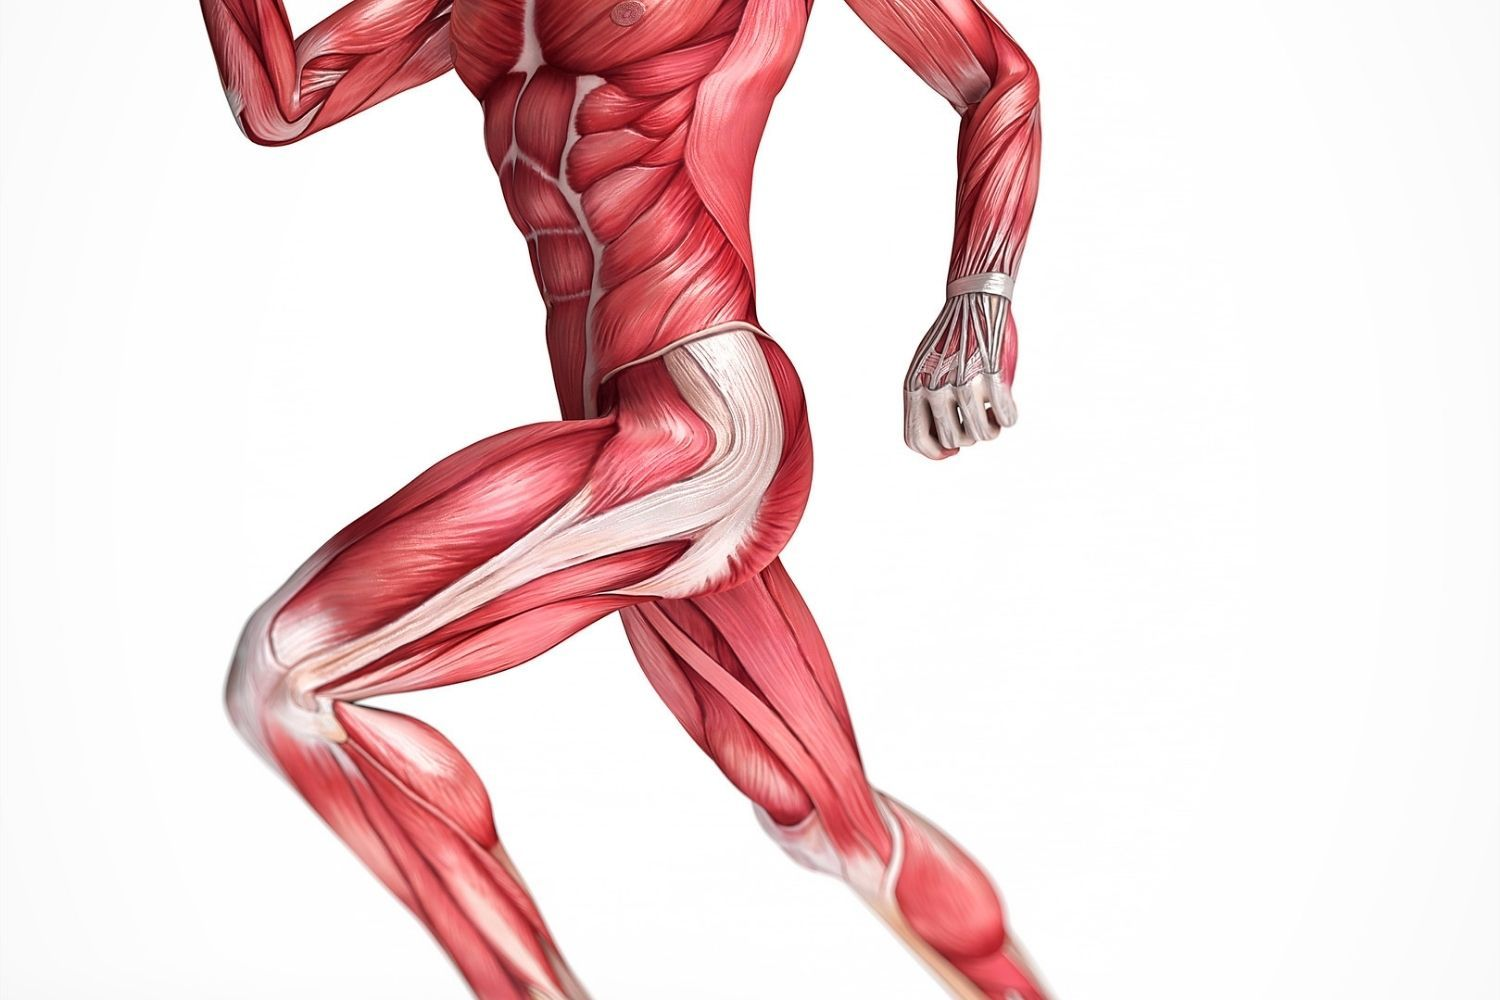 Expand your skills and learn the foundations of Kinesiology.